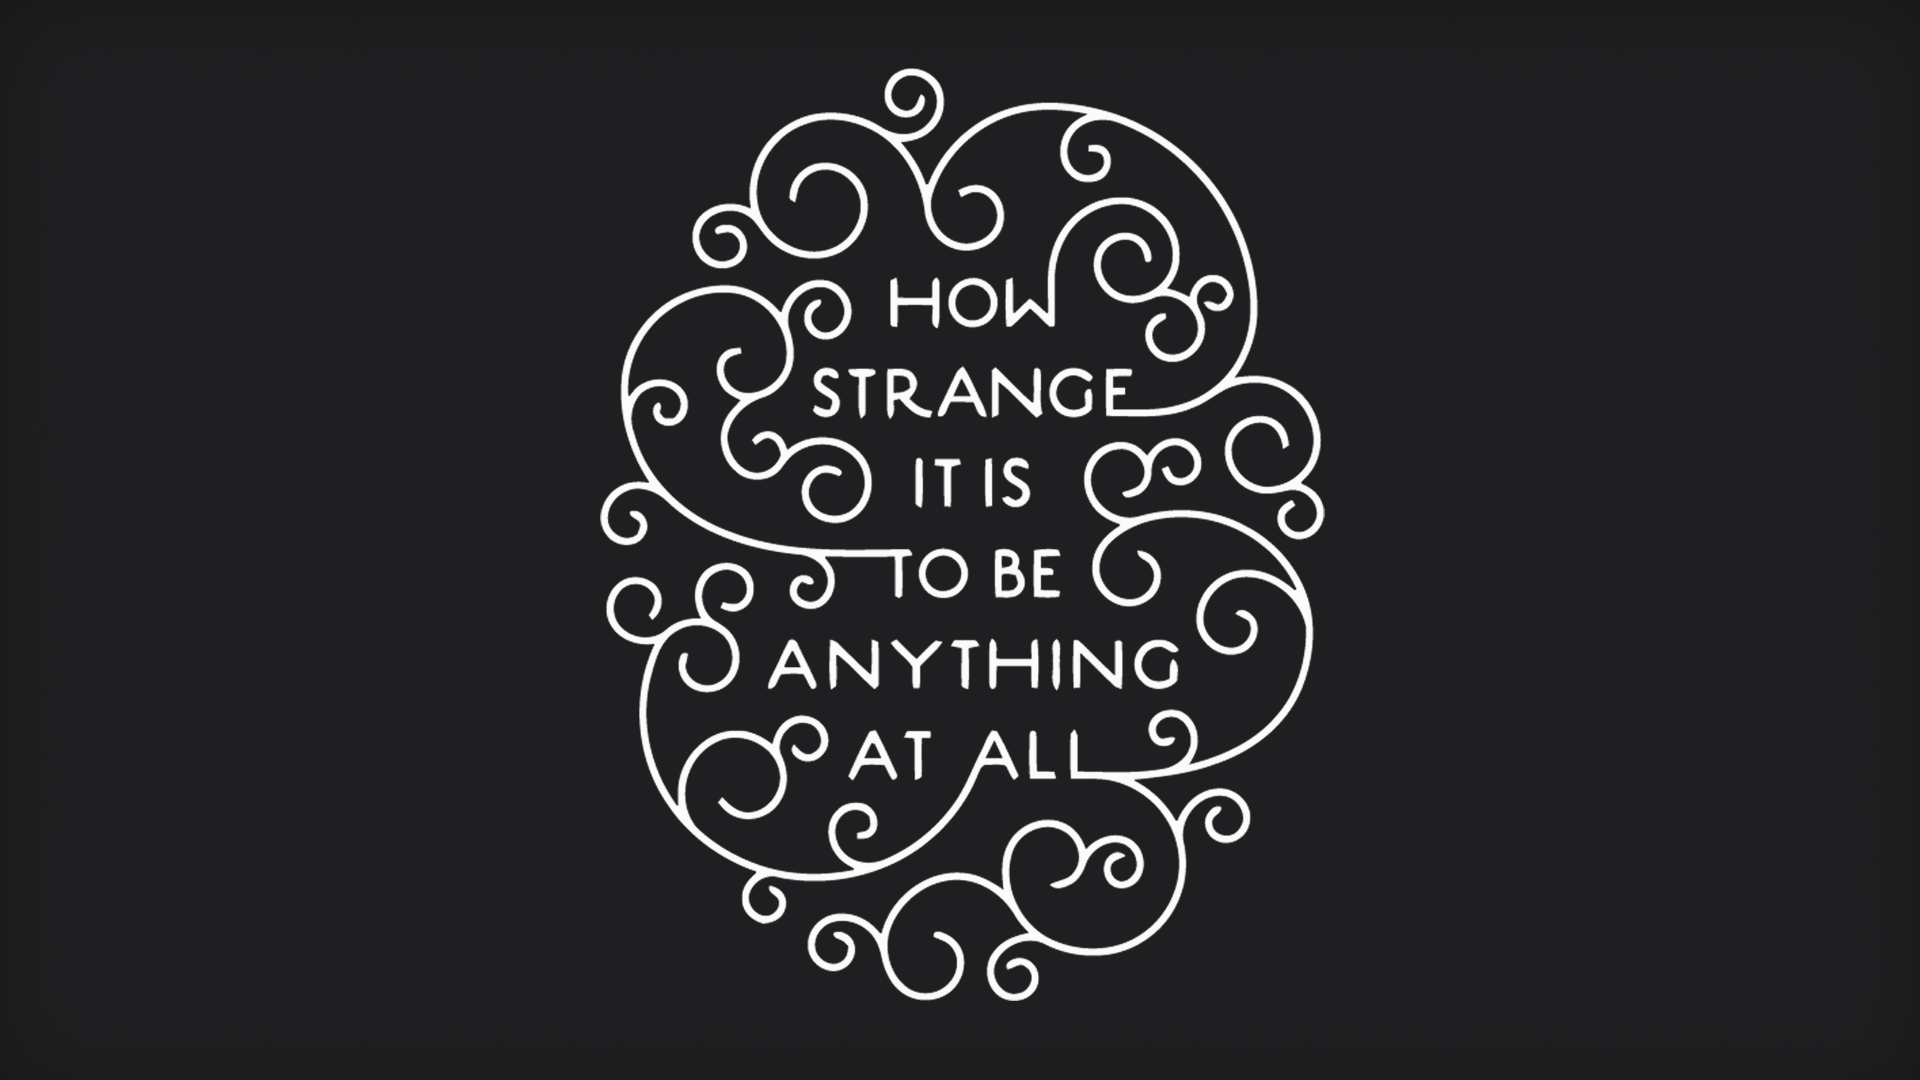 Wallpaper I Made Based On A Neutral Milk Hotel Lyric 1920x1080